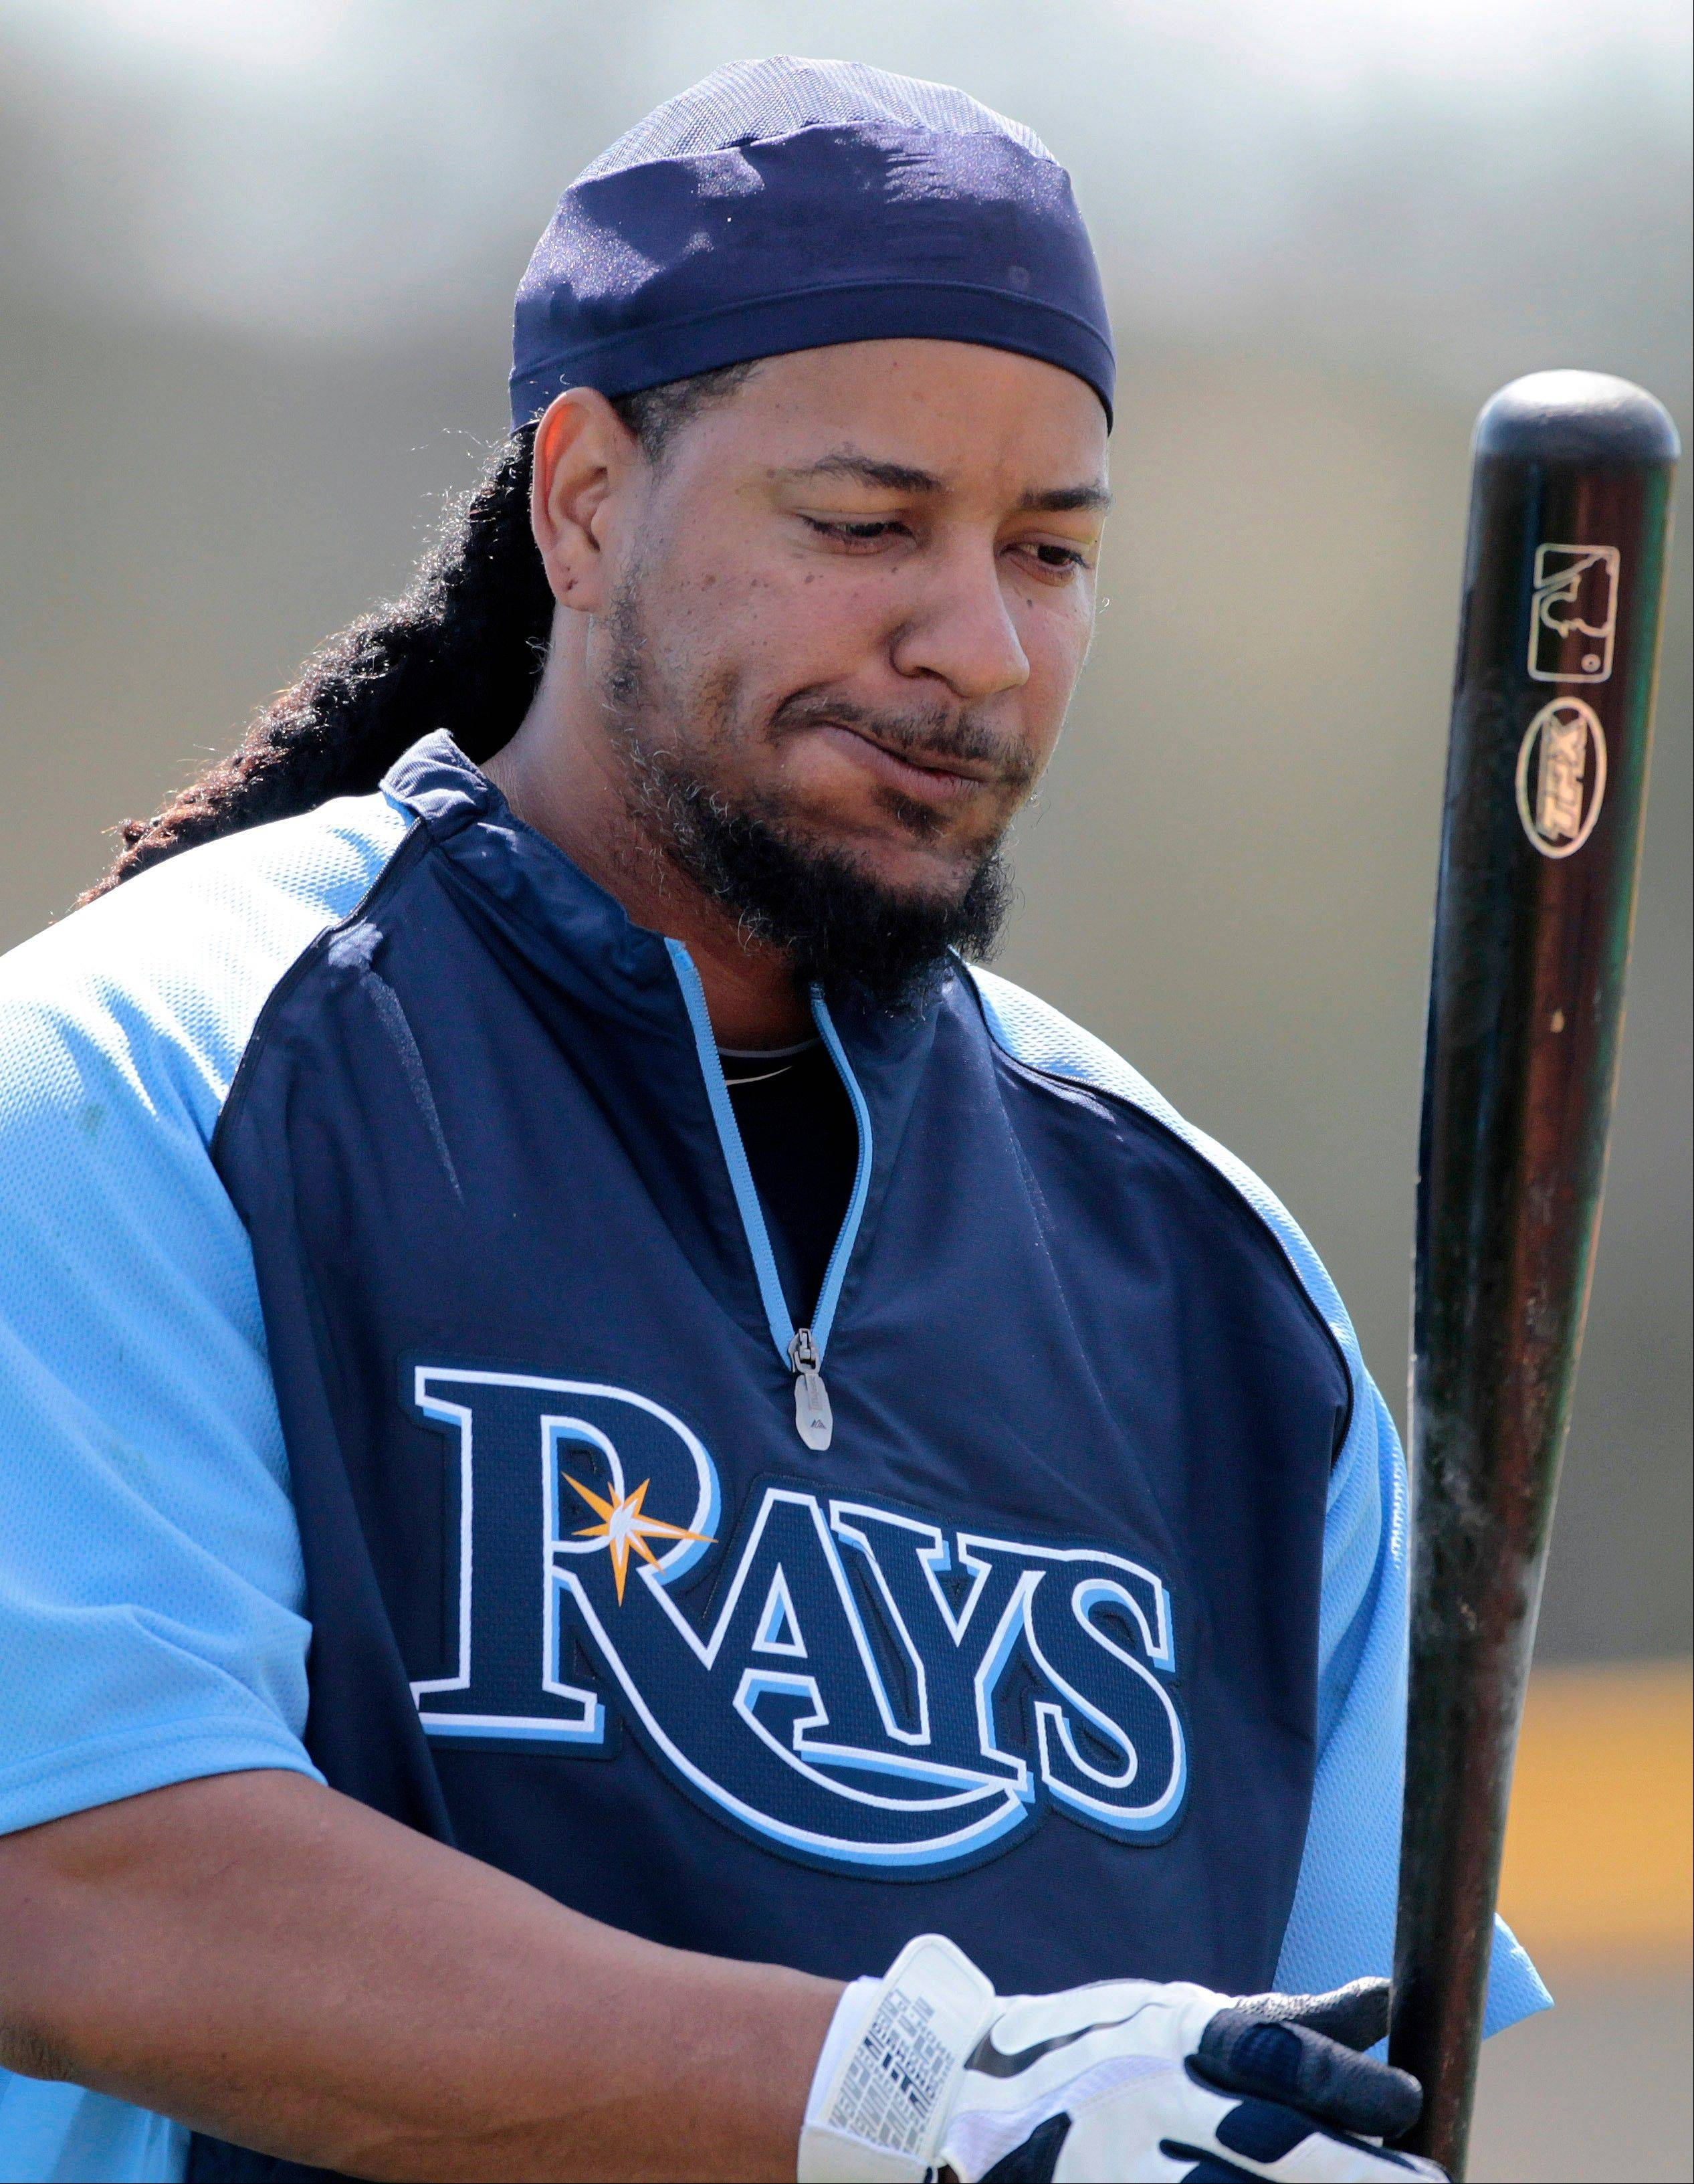 A person familiar with the situation says the substance that caused Manny Ramirez to test positive for a banned substance last year was testosterone. The administrator of baseball's drug program issued his annual report Friday. The document lists the substances that resulted in seven positive tests for performance-enhancing drugs that led to discipline.